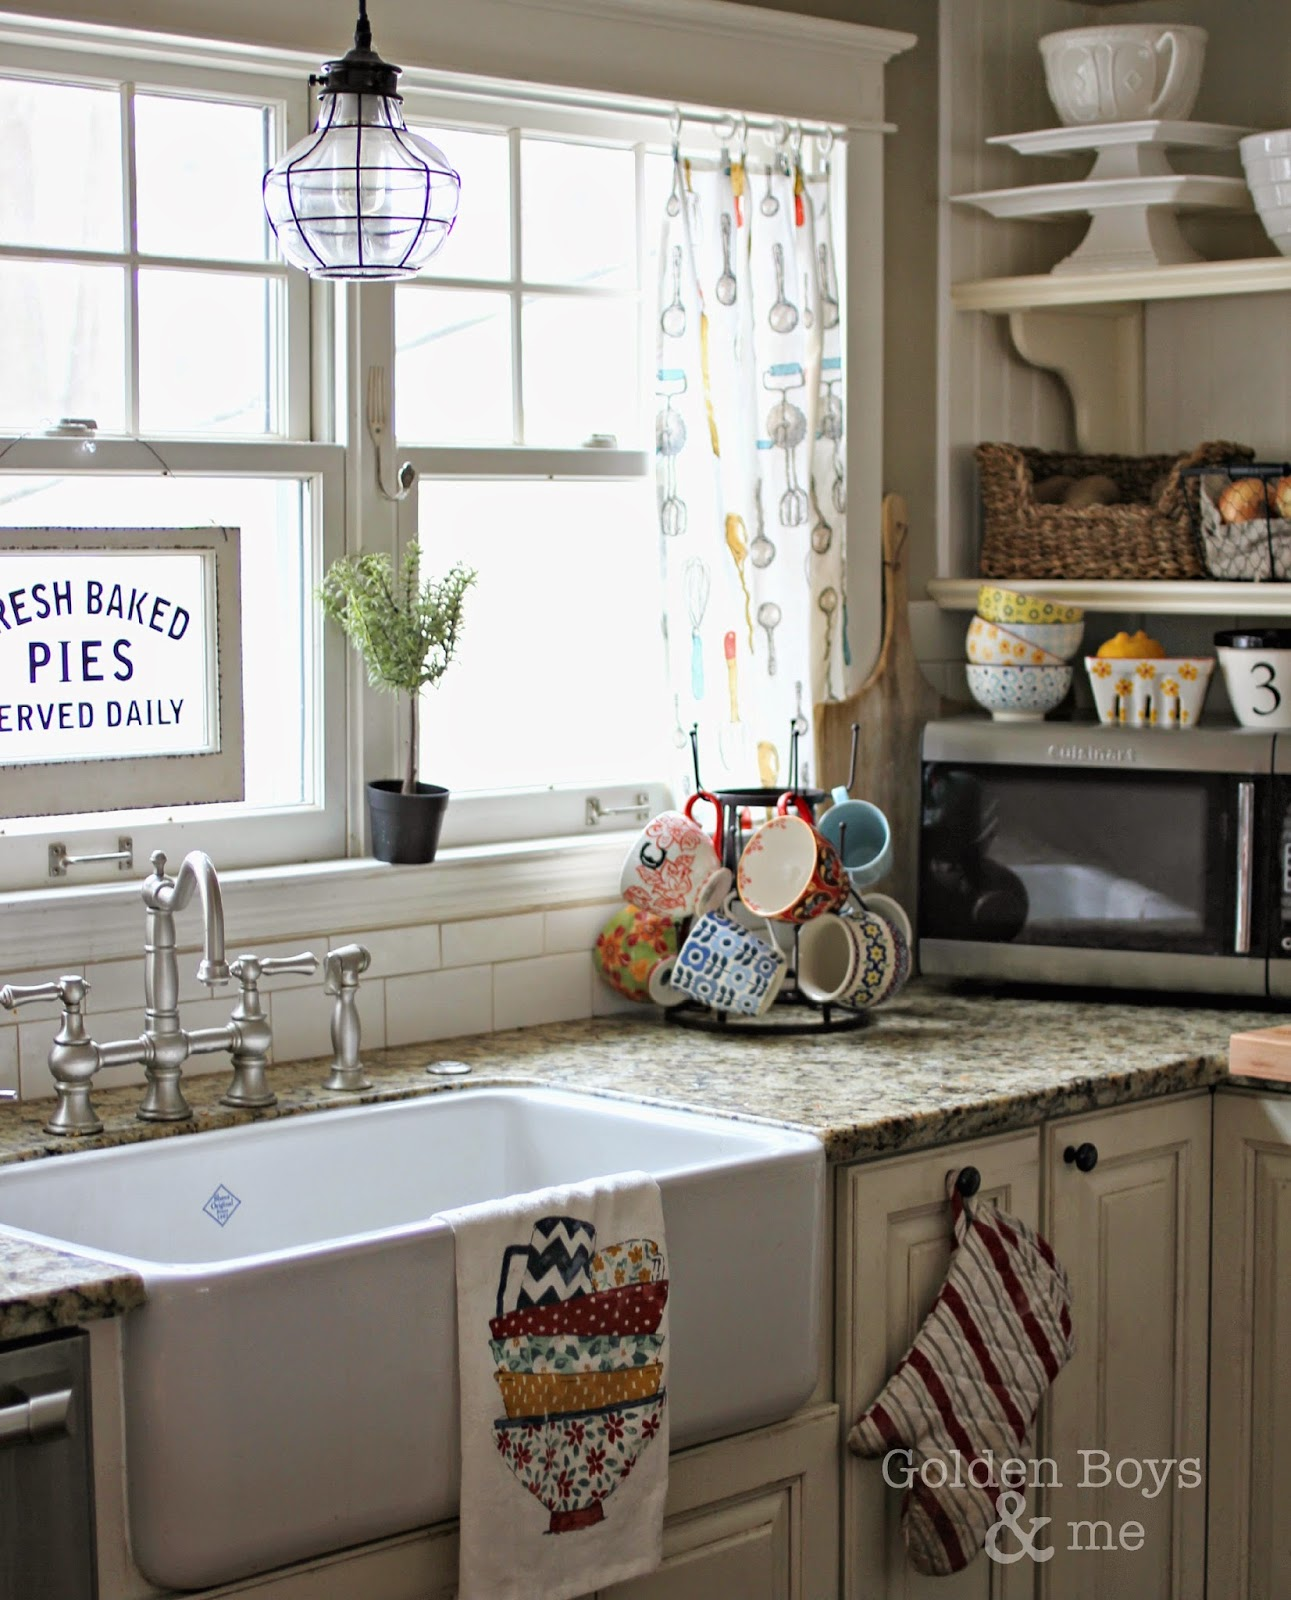 Kitchen Dish Towels Delta Faucet Parts List Golden Boys And Me Turned Curtains Easy Diy Made With Www Goldenboysandme Com